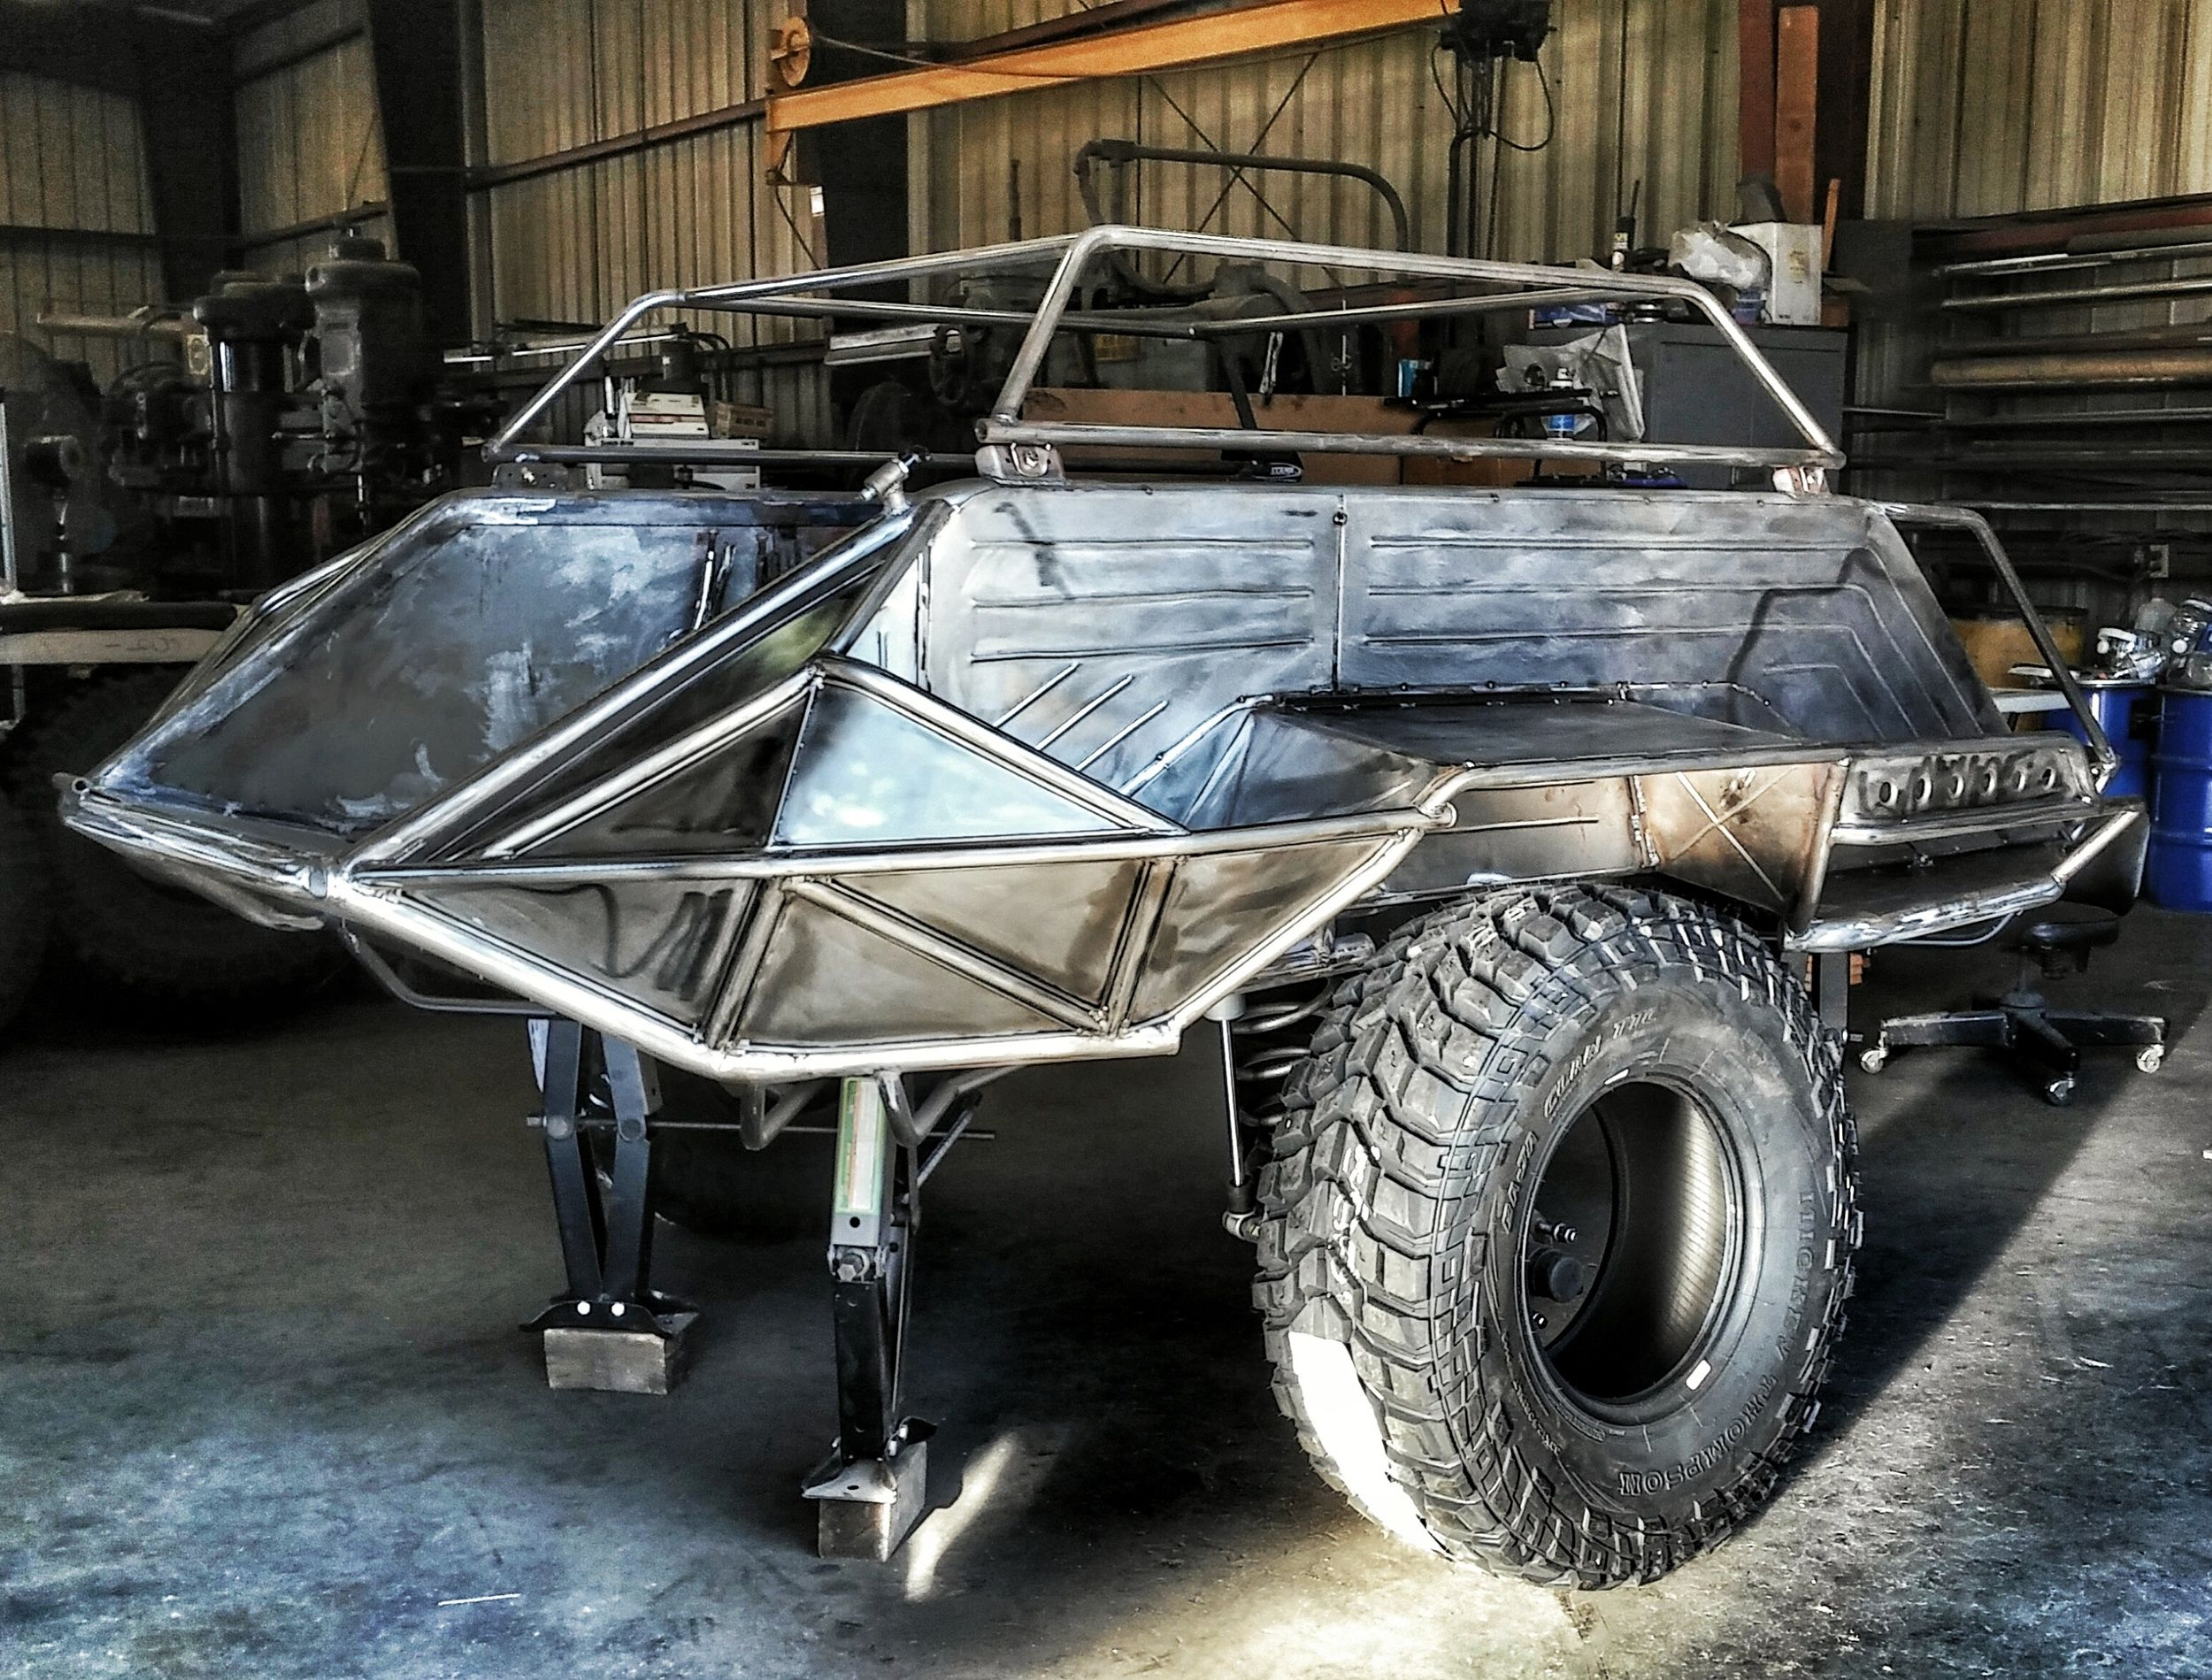 Yeti Built Off Road Trailer Small Pinterest Lengthening Car Page 2 Pirate4x4com 4x4 And Offroad